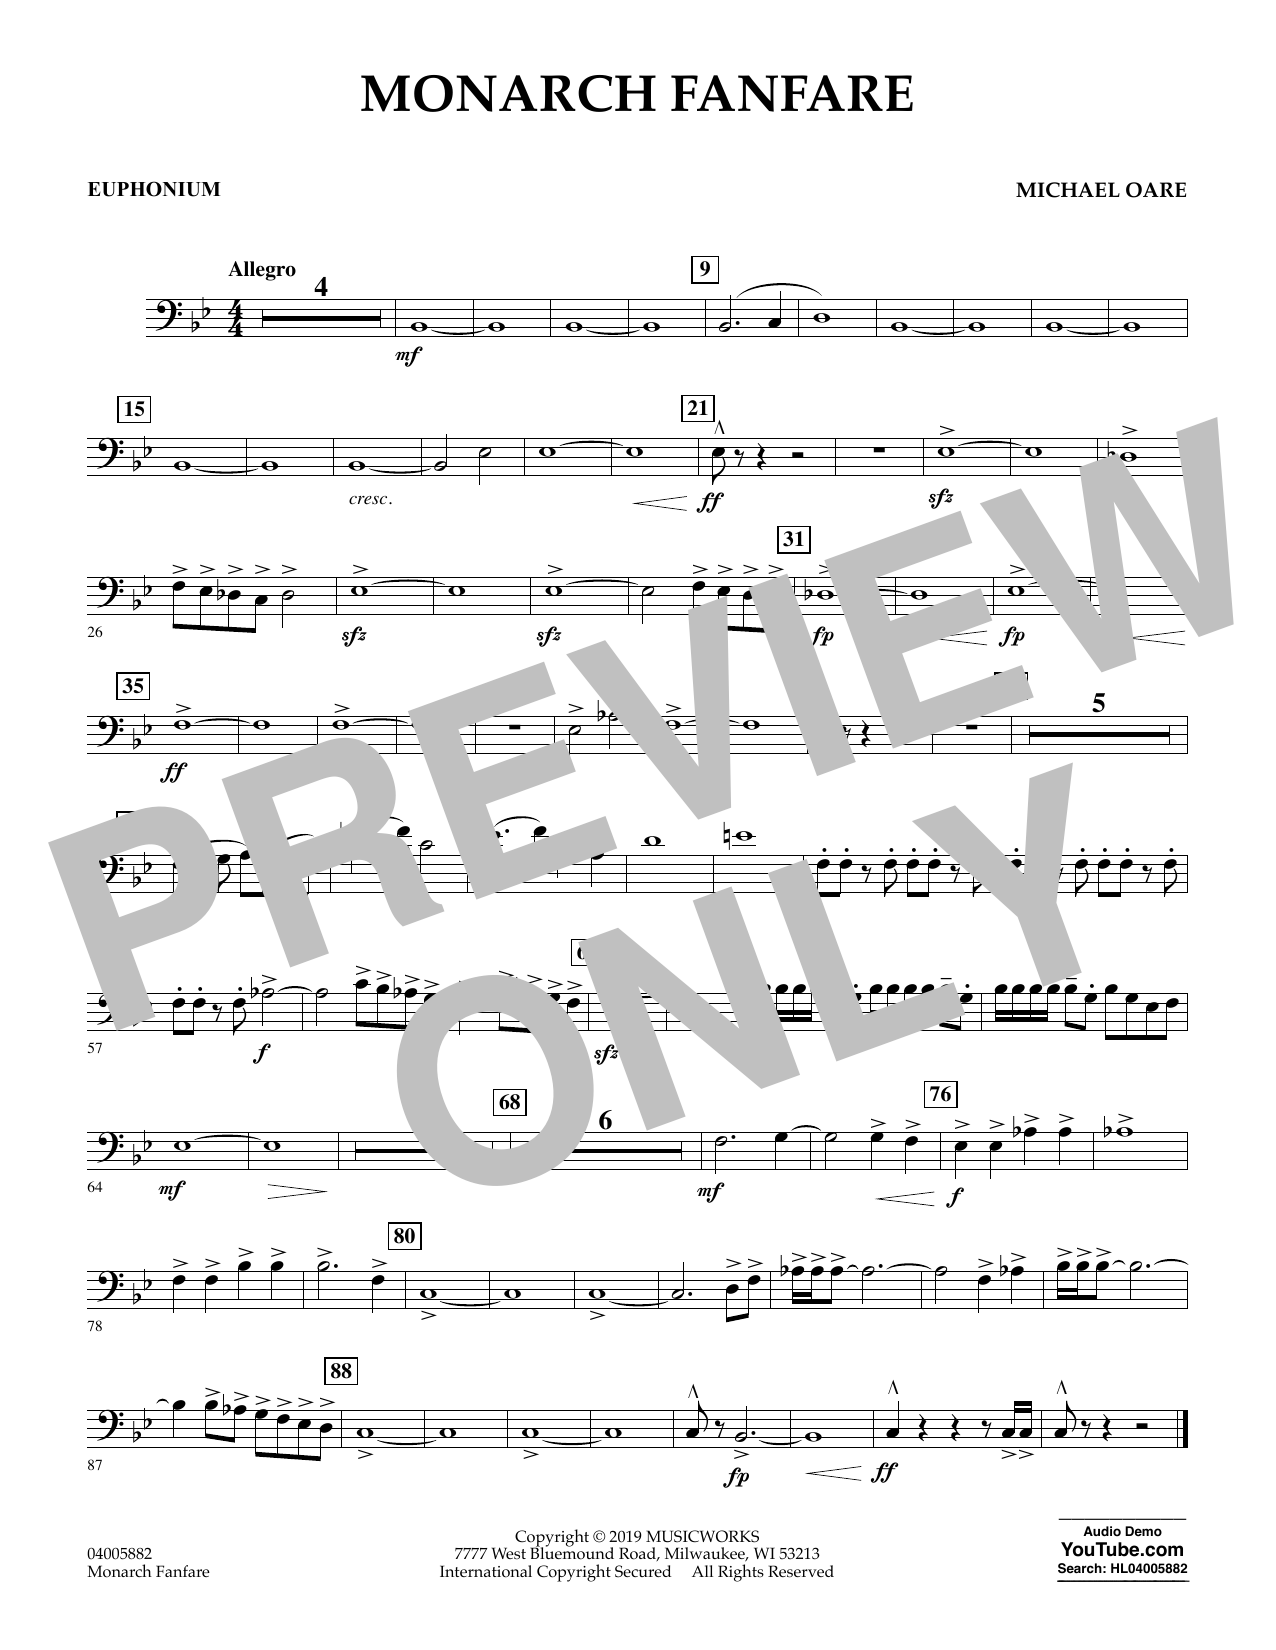 Michael Oare Monarch Fanfare - Euphonium in Bass Clef sheet music preview music notes and score for Concert Band including 1 page(s)